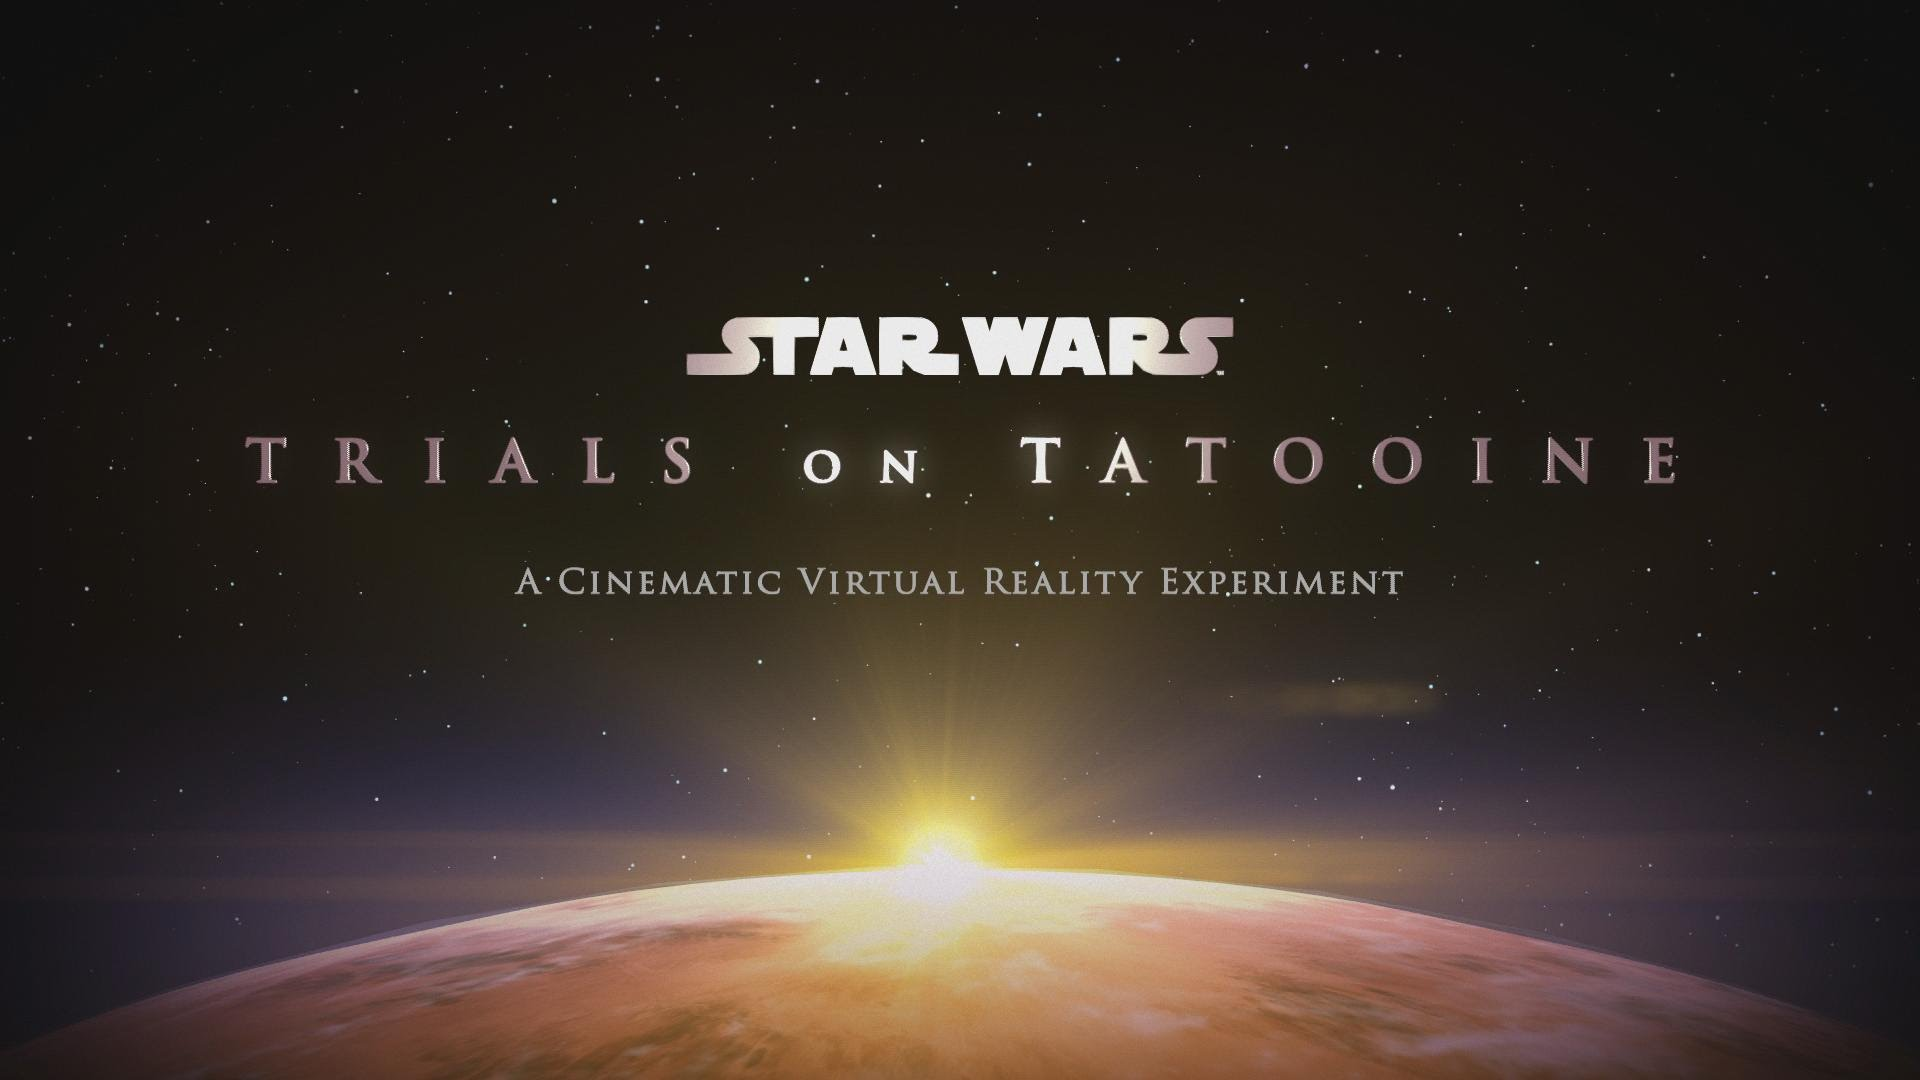 David Goyer Collaborates with Industrial Light and Magic to produce and release a VR movie about Darth Vader